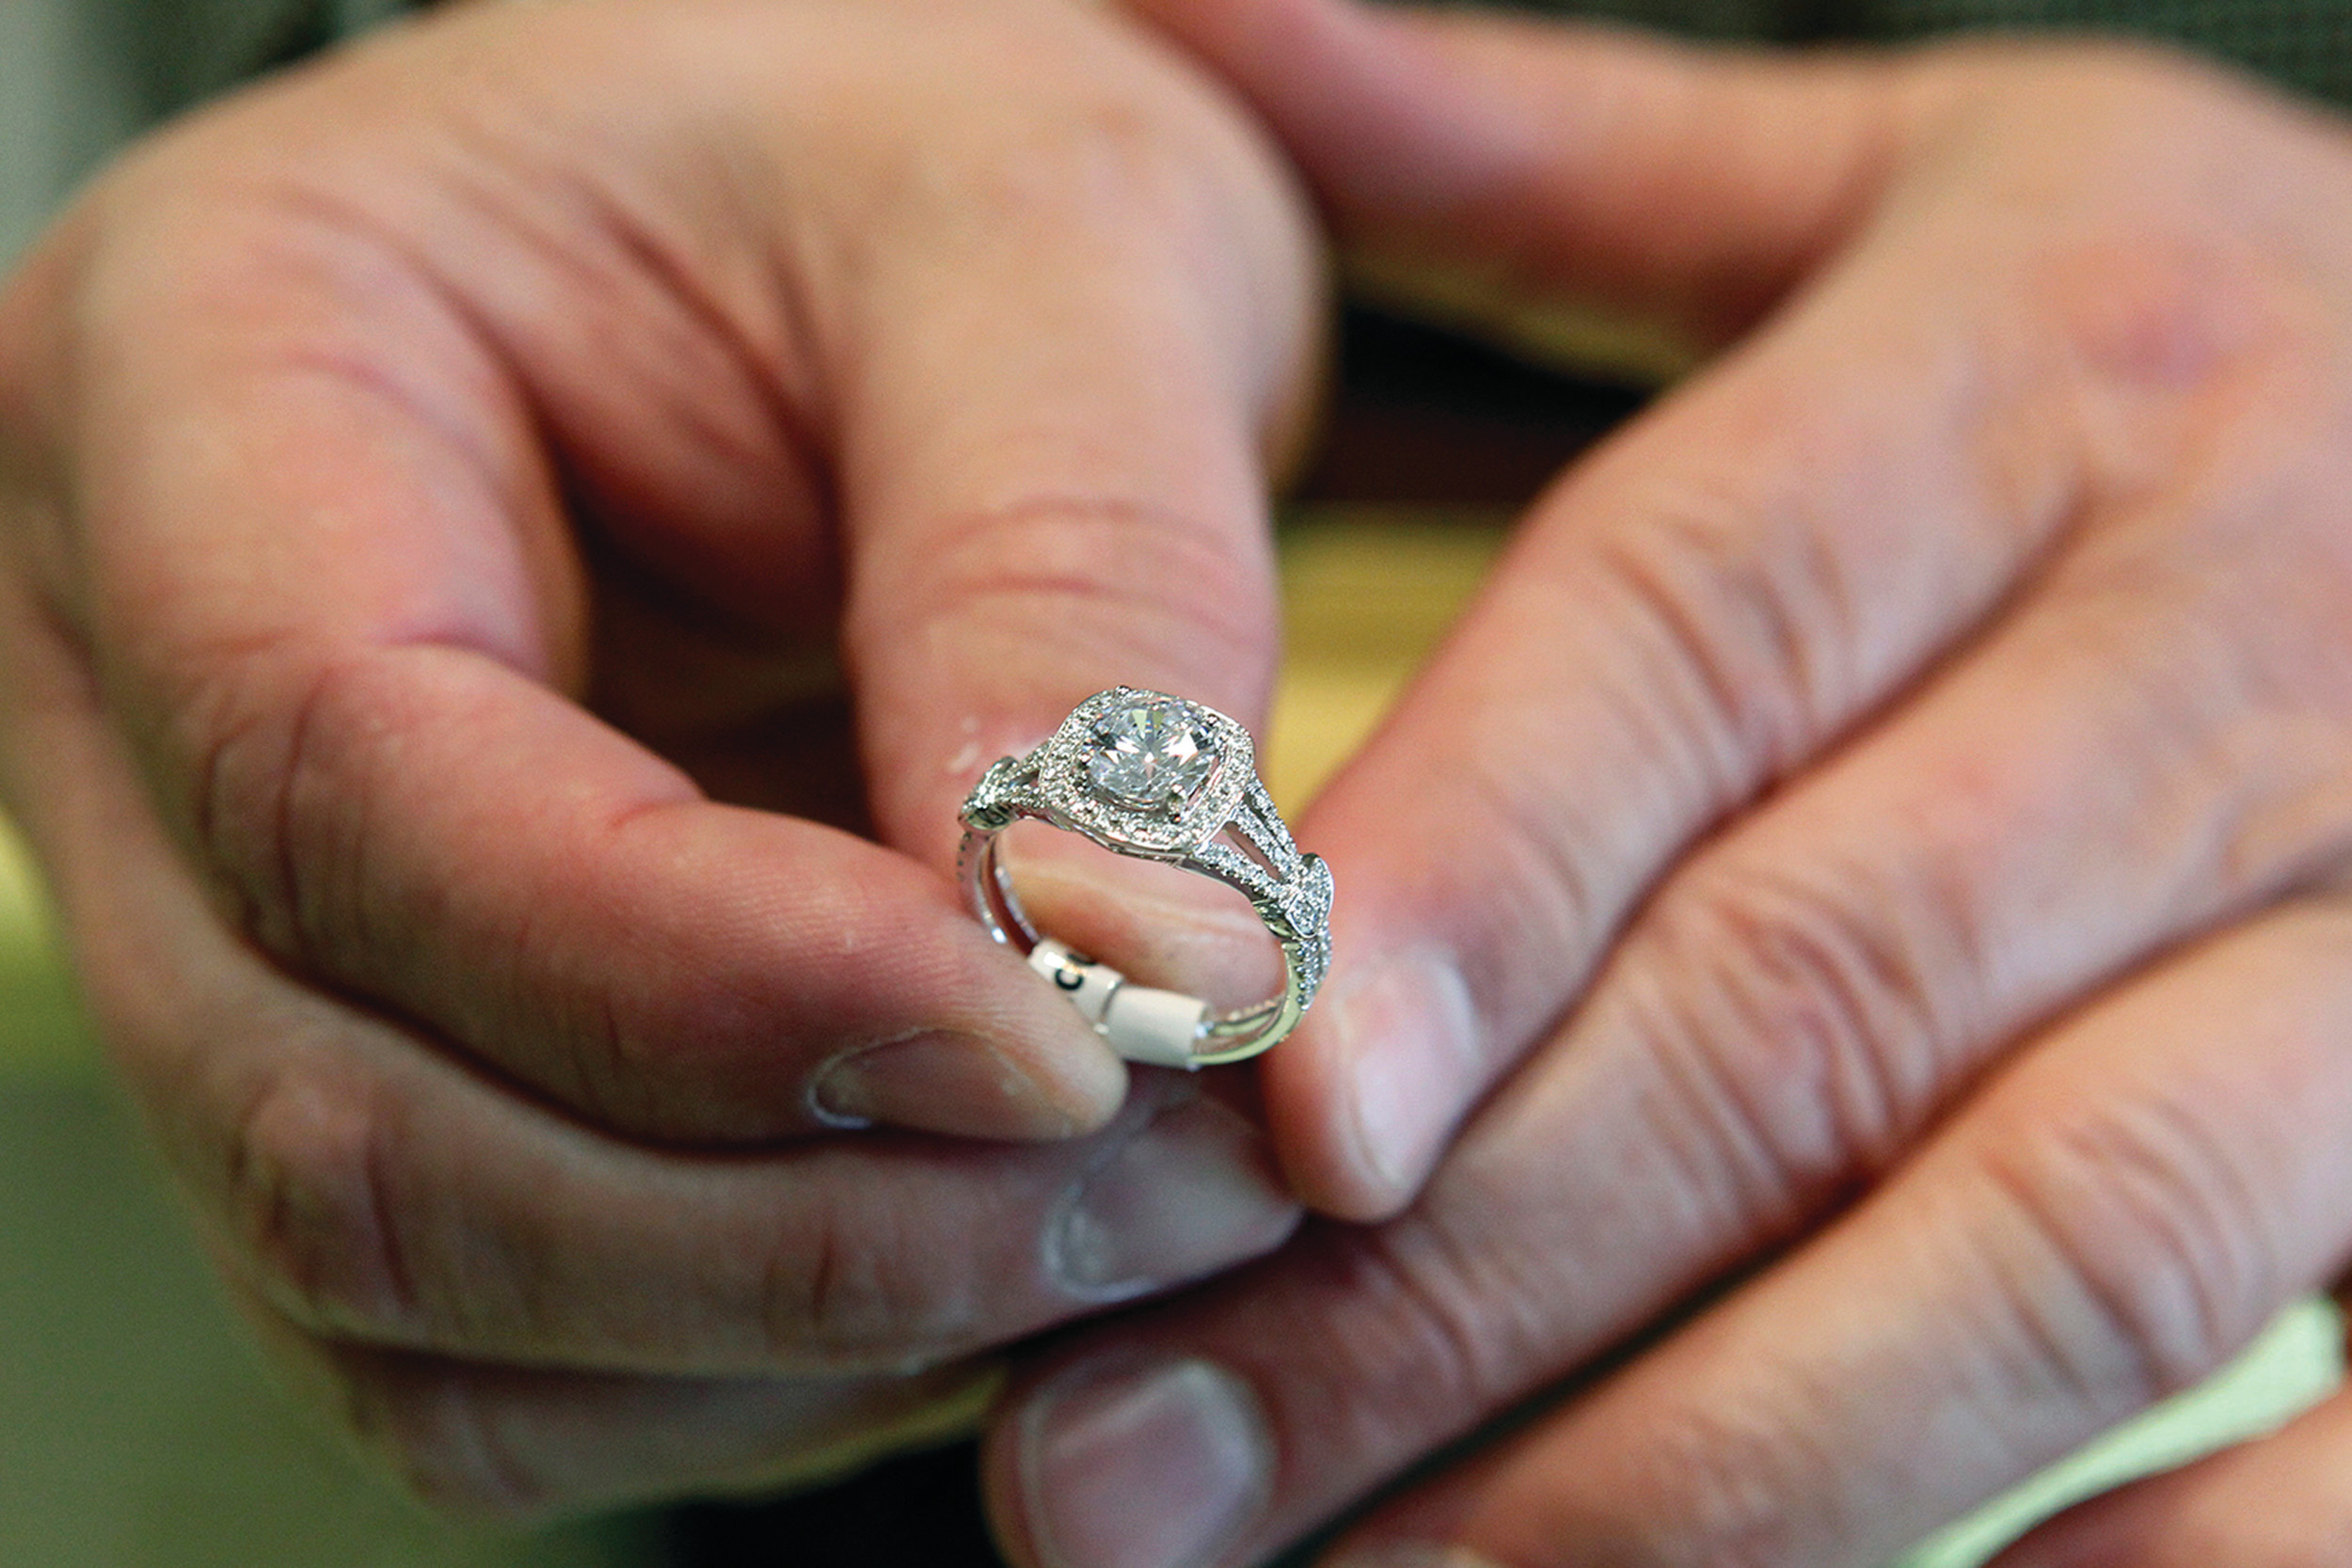 FILE - In this May 14, 2014, file photo, Brad Padgett, owner of Bradley's Jewelers, shows off one of his favorite engagement rings in Jacksonville, N.C. It's not exactly romantic, but engagement ring insurance is a relatively inexpensive way to make sure you can repair or replace your ring in case of theft, damage or mysterious disappearance. (Maria Sestito/The Jacksonville Daily News via AP, File)